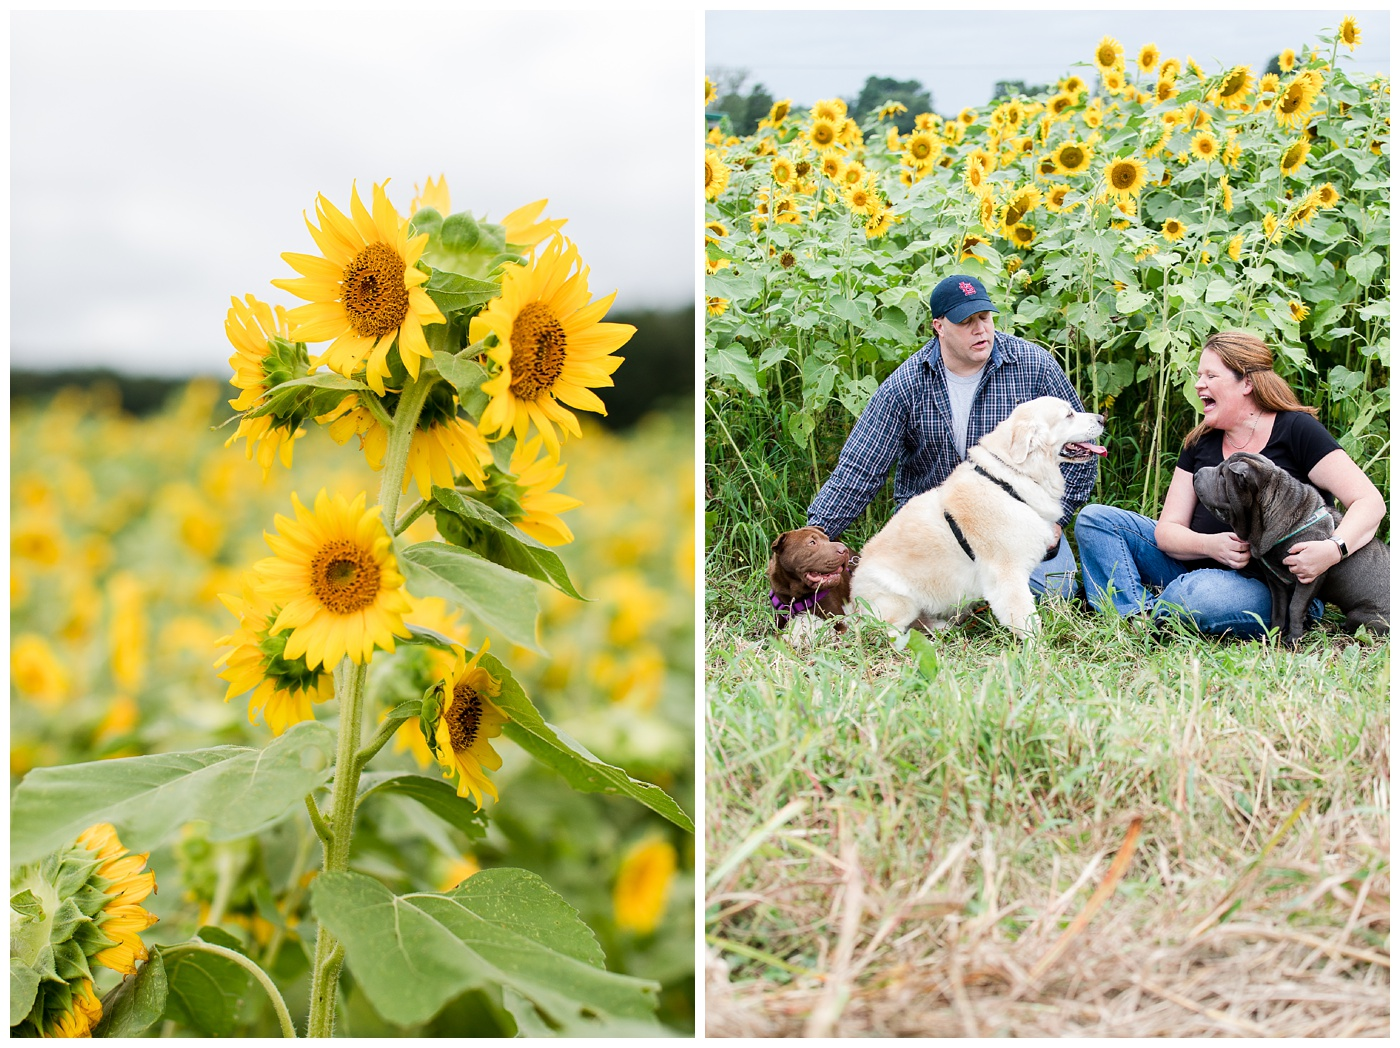 Haley & Pete | Cullipher Farms Sunflower field Maternity session